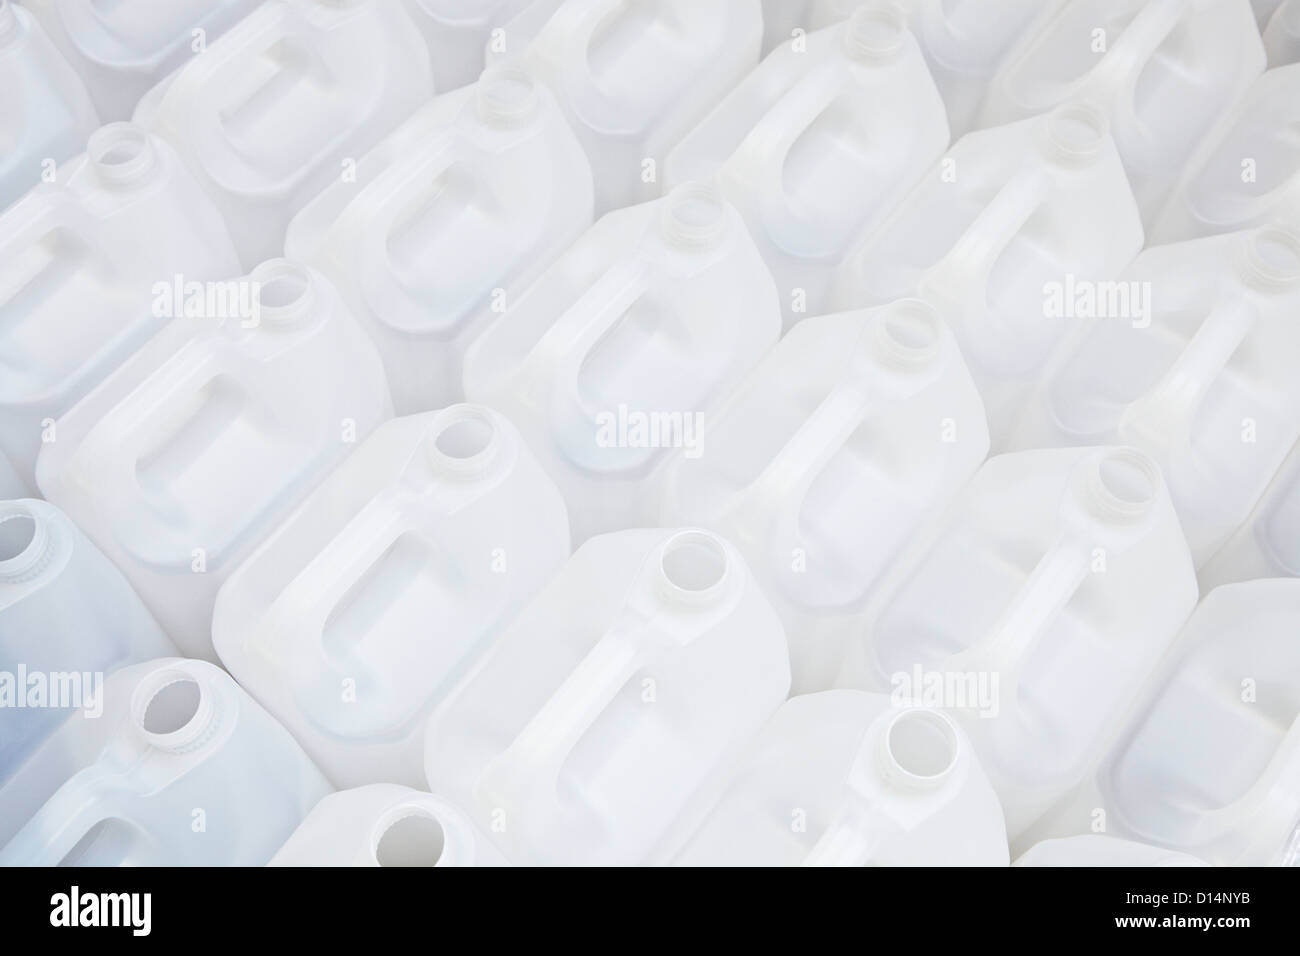 Close up of empty white plastic cartons - Stock Image